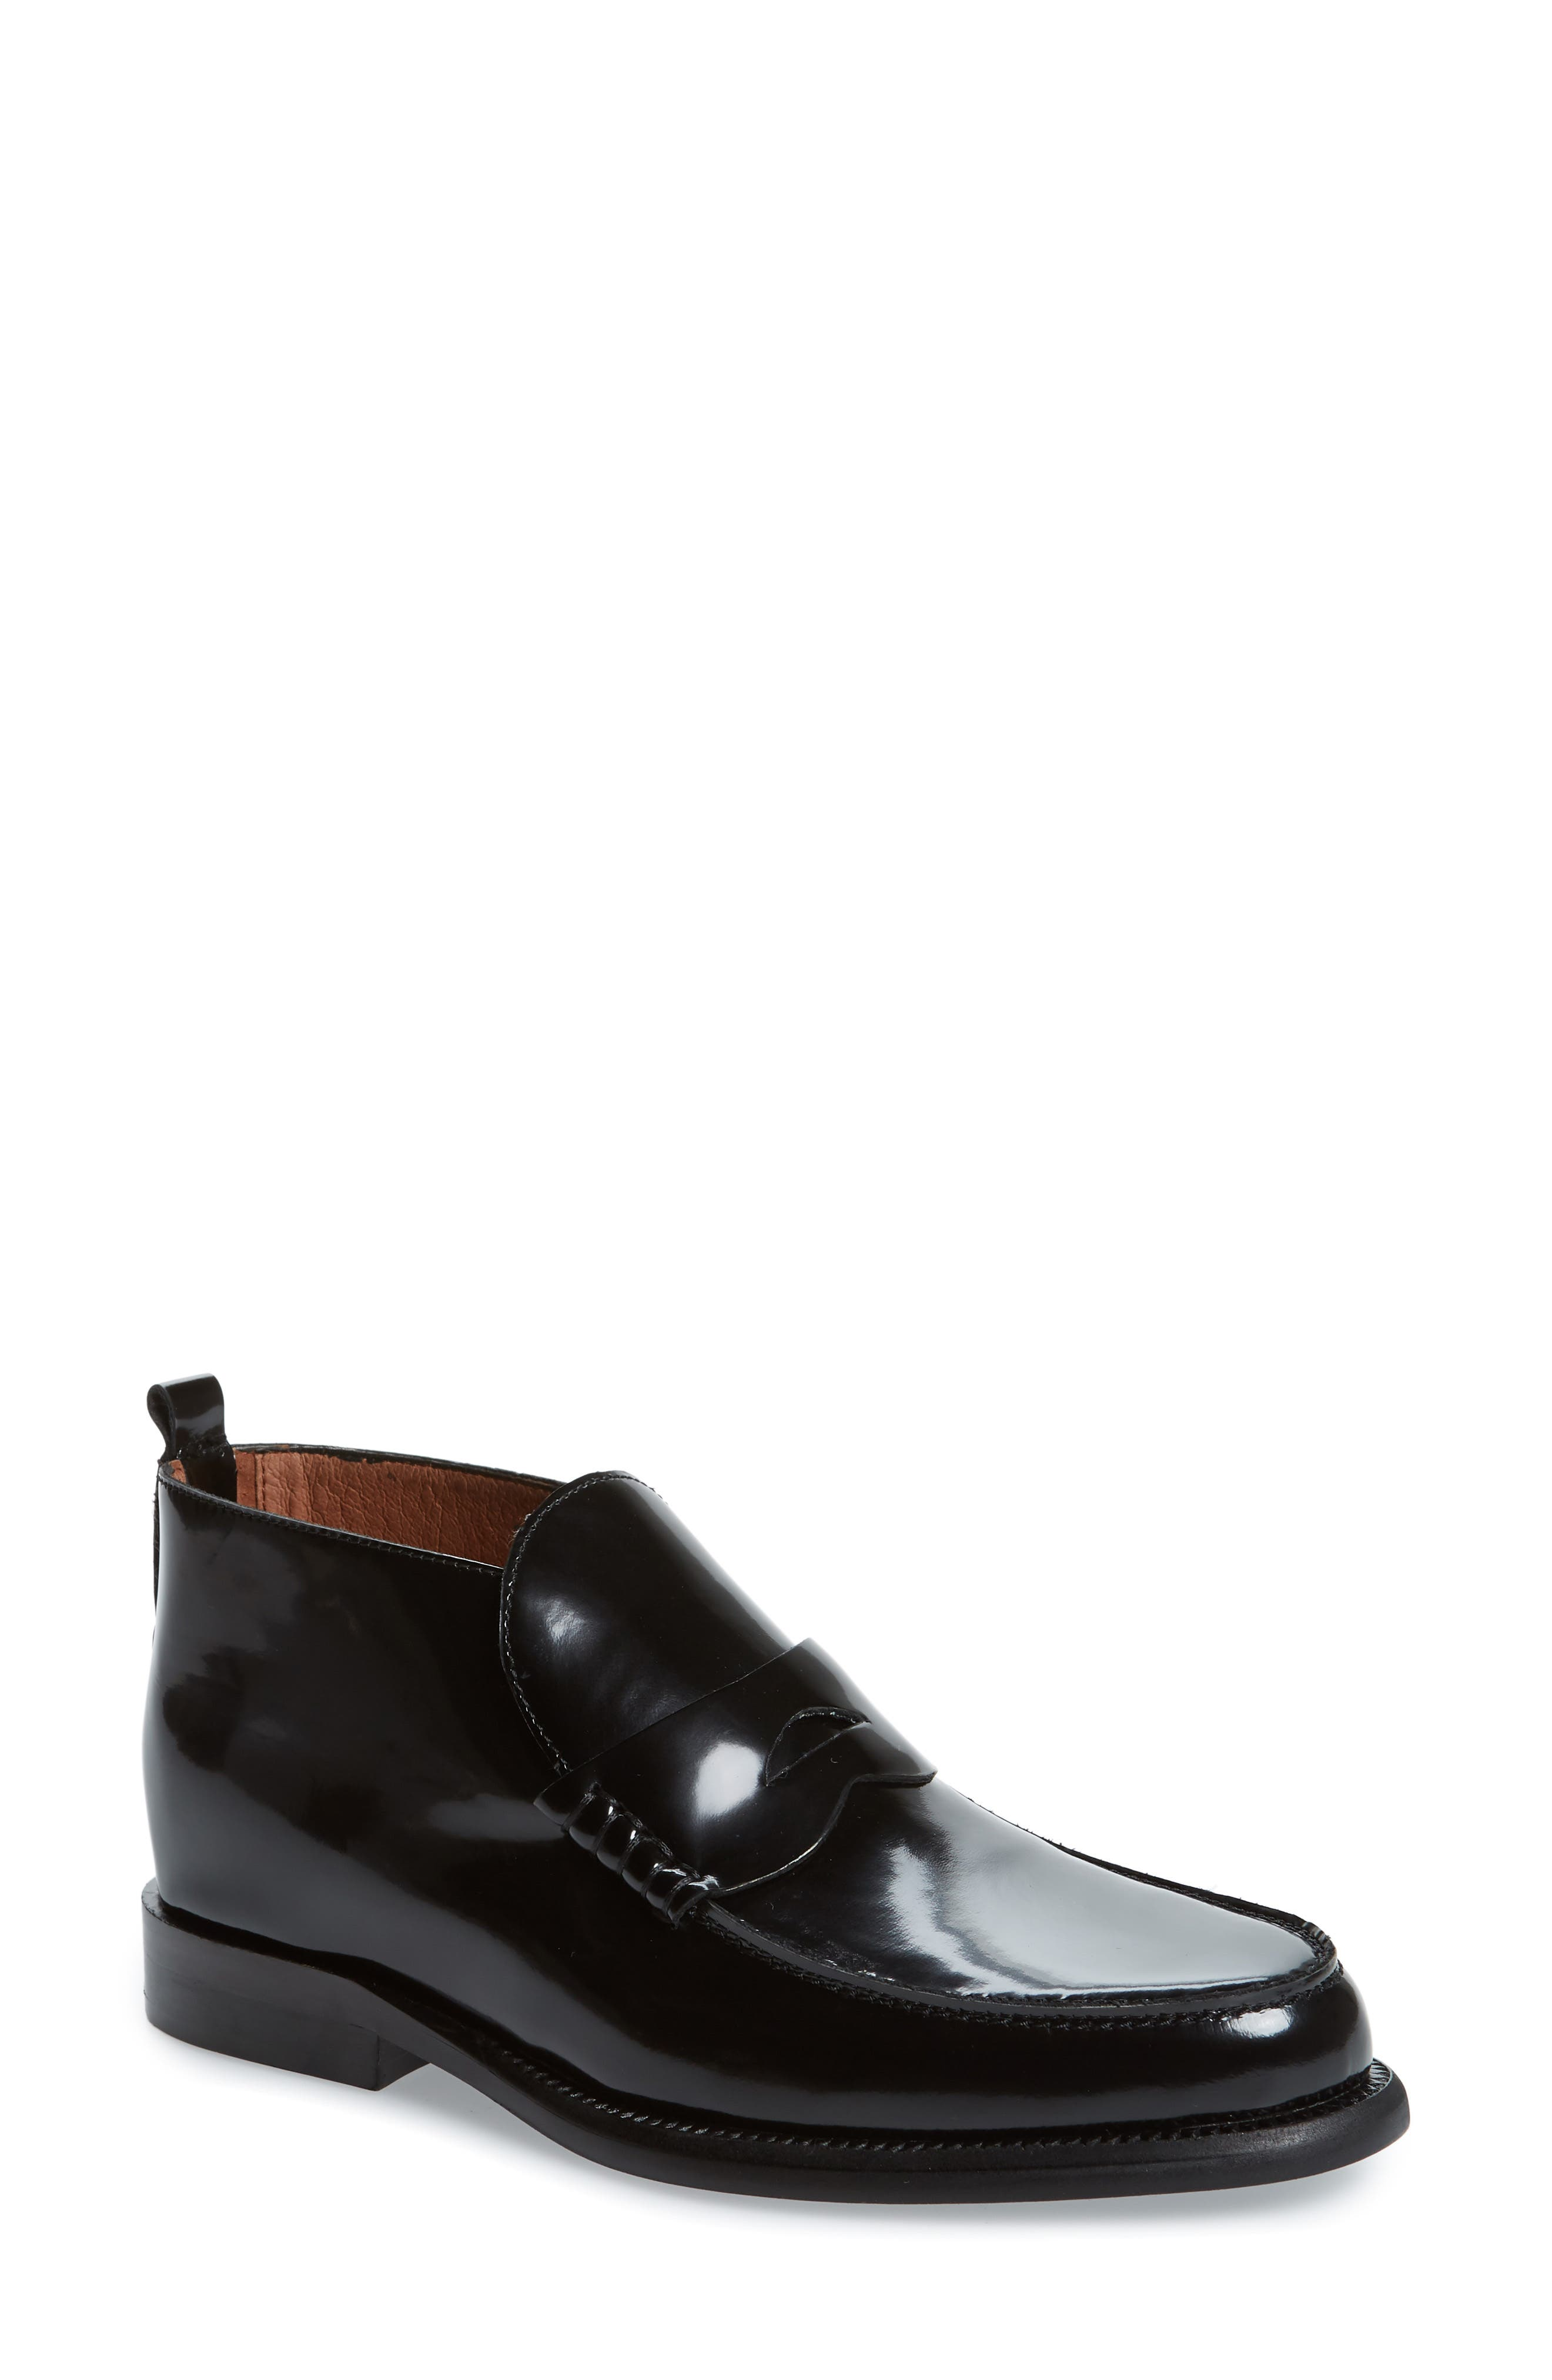 JEFFREY CAMPBELL, Marquis Loafer, Main thumbnail 1, color, BLACK LEATHER